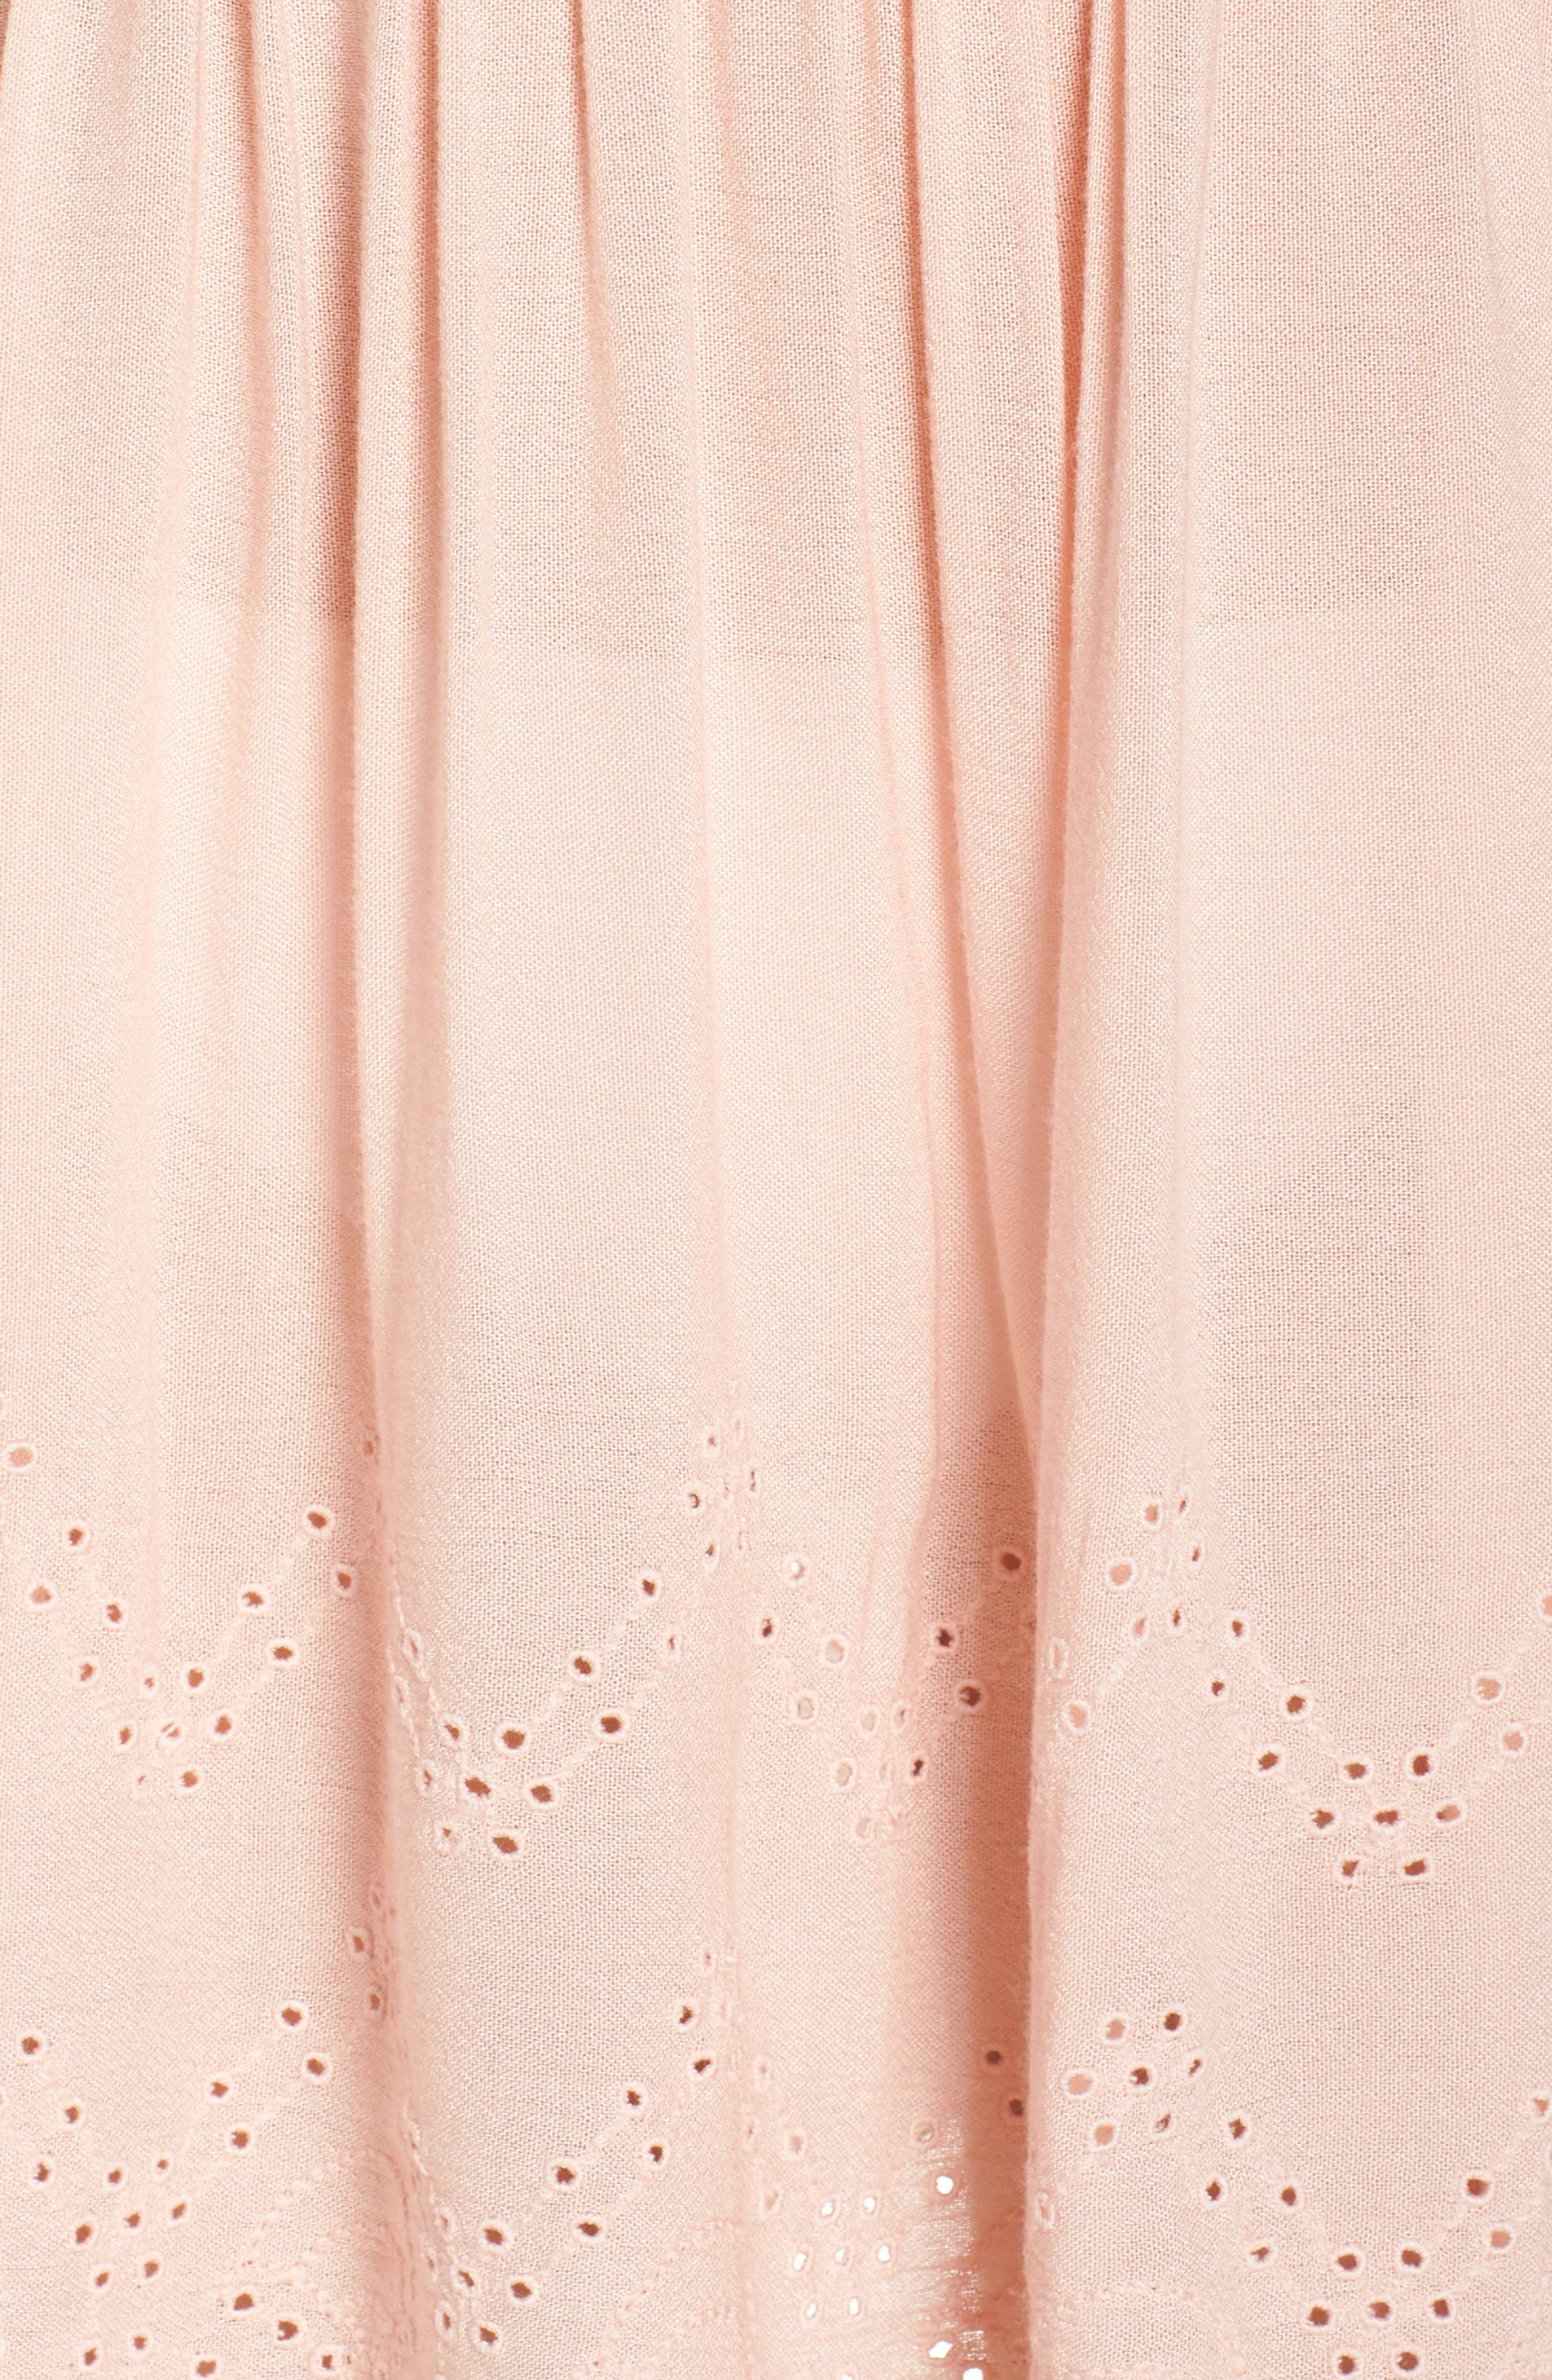 Goddess Cover-Up Dress,                             Alternate thumbnail 5, color,                             PINK ROSECLOUD